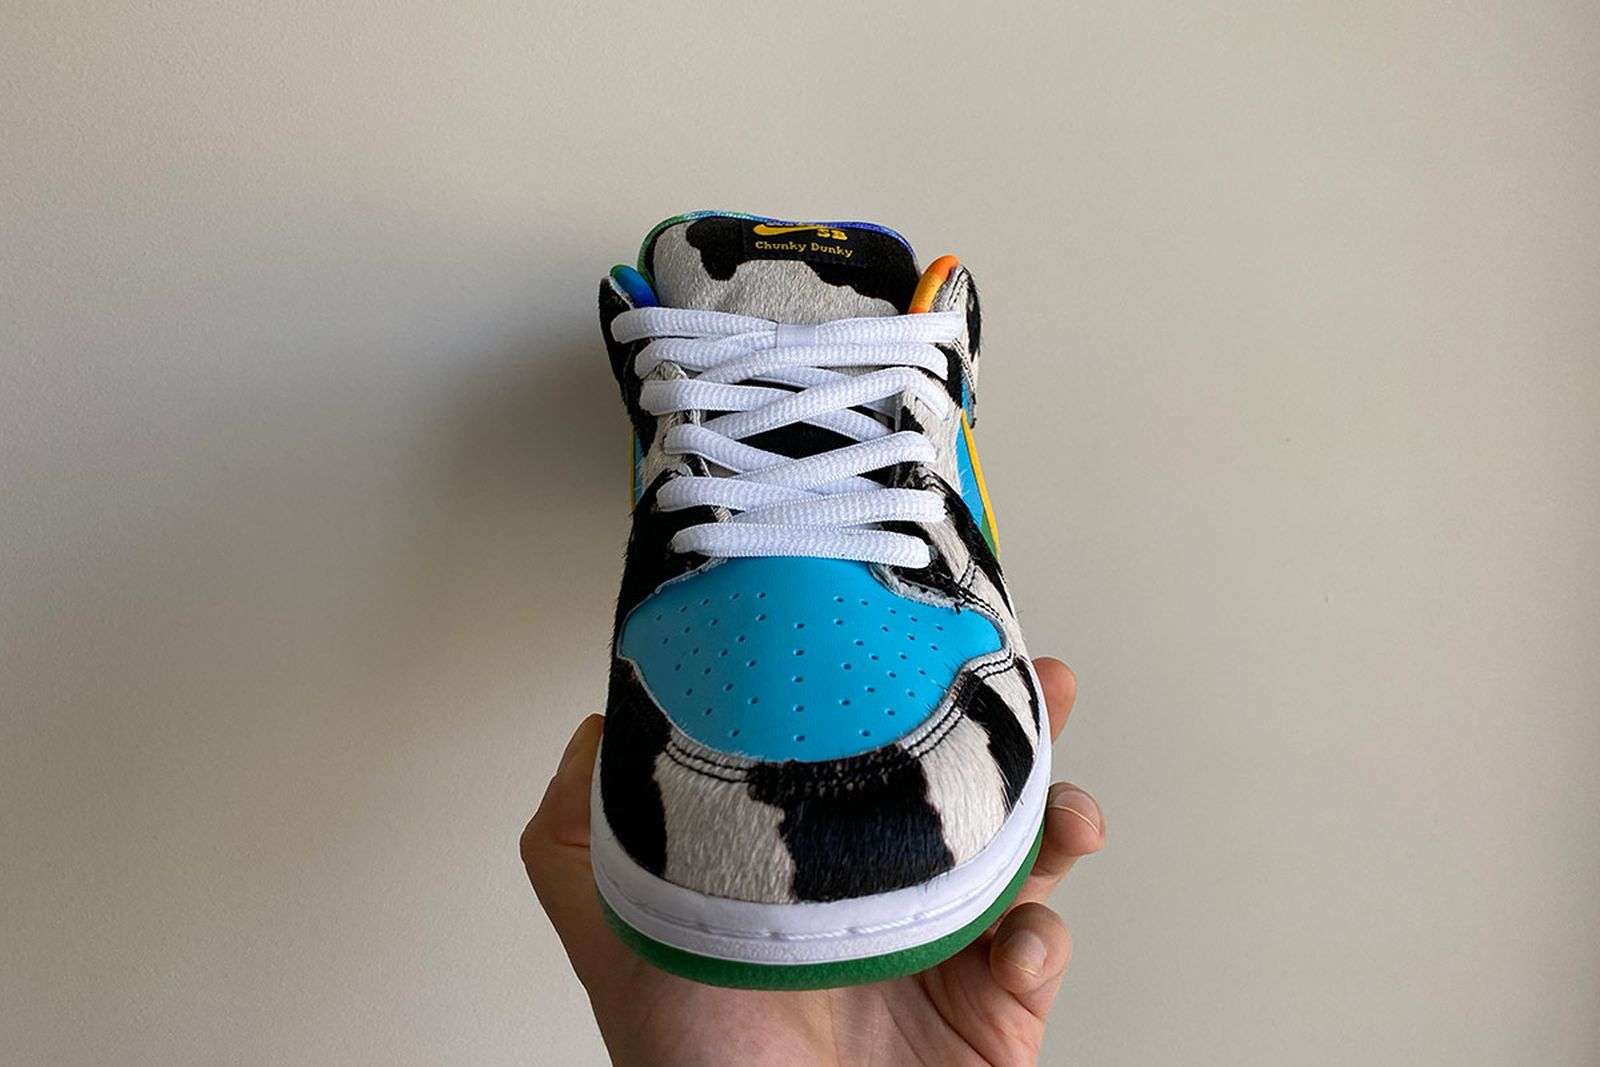 nike-sb-dunk-chunky-dunky-release-date-price-official-07